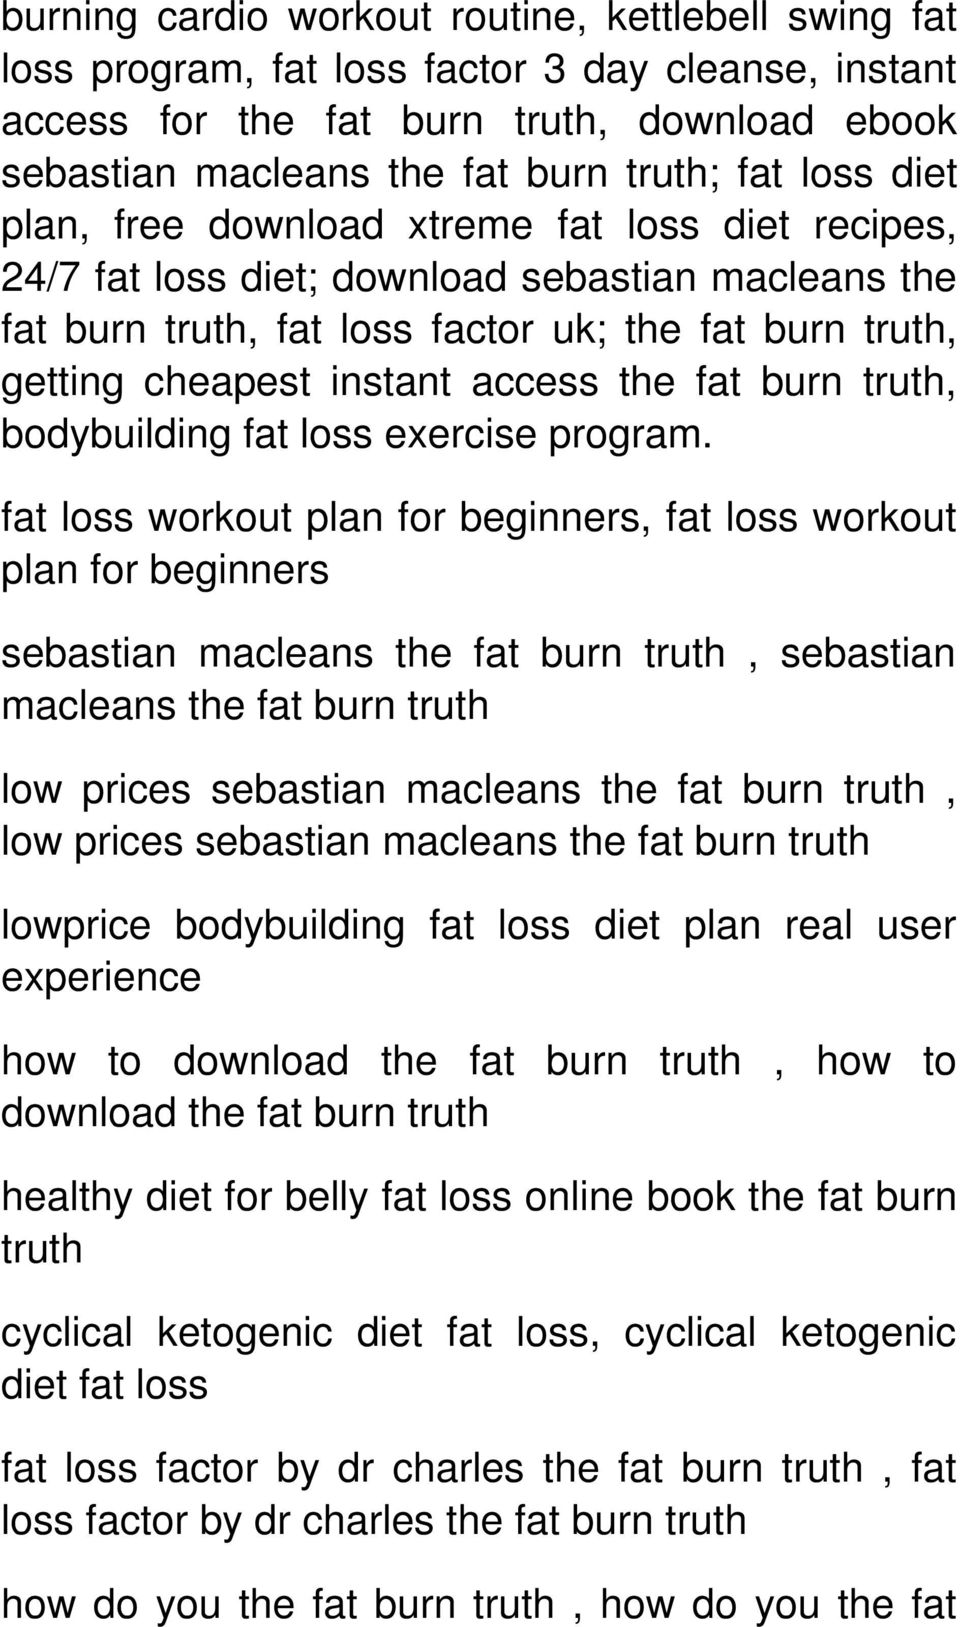 Enter Here The Fat Burn Truth Fat Burning Secrets Click Here